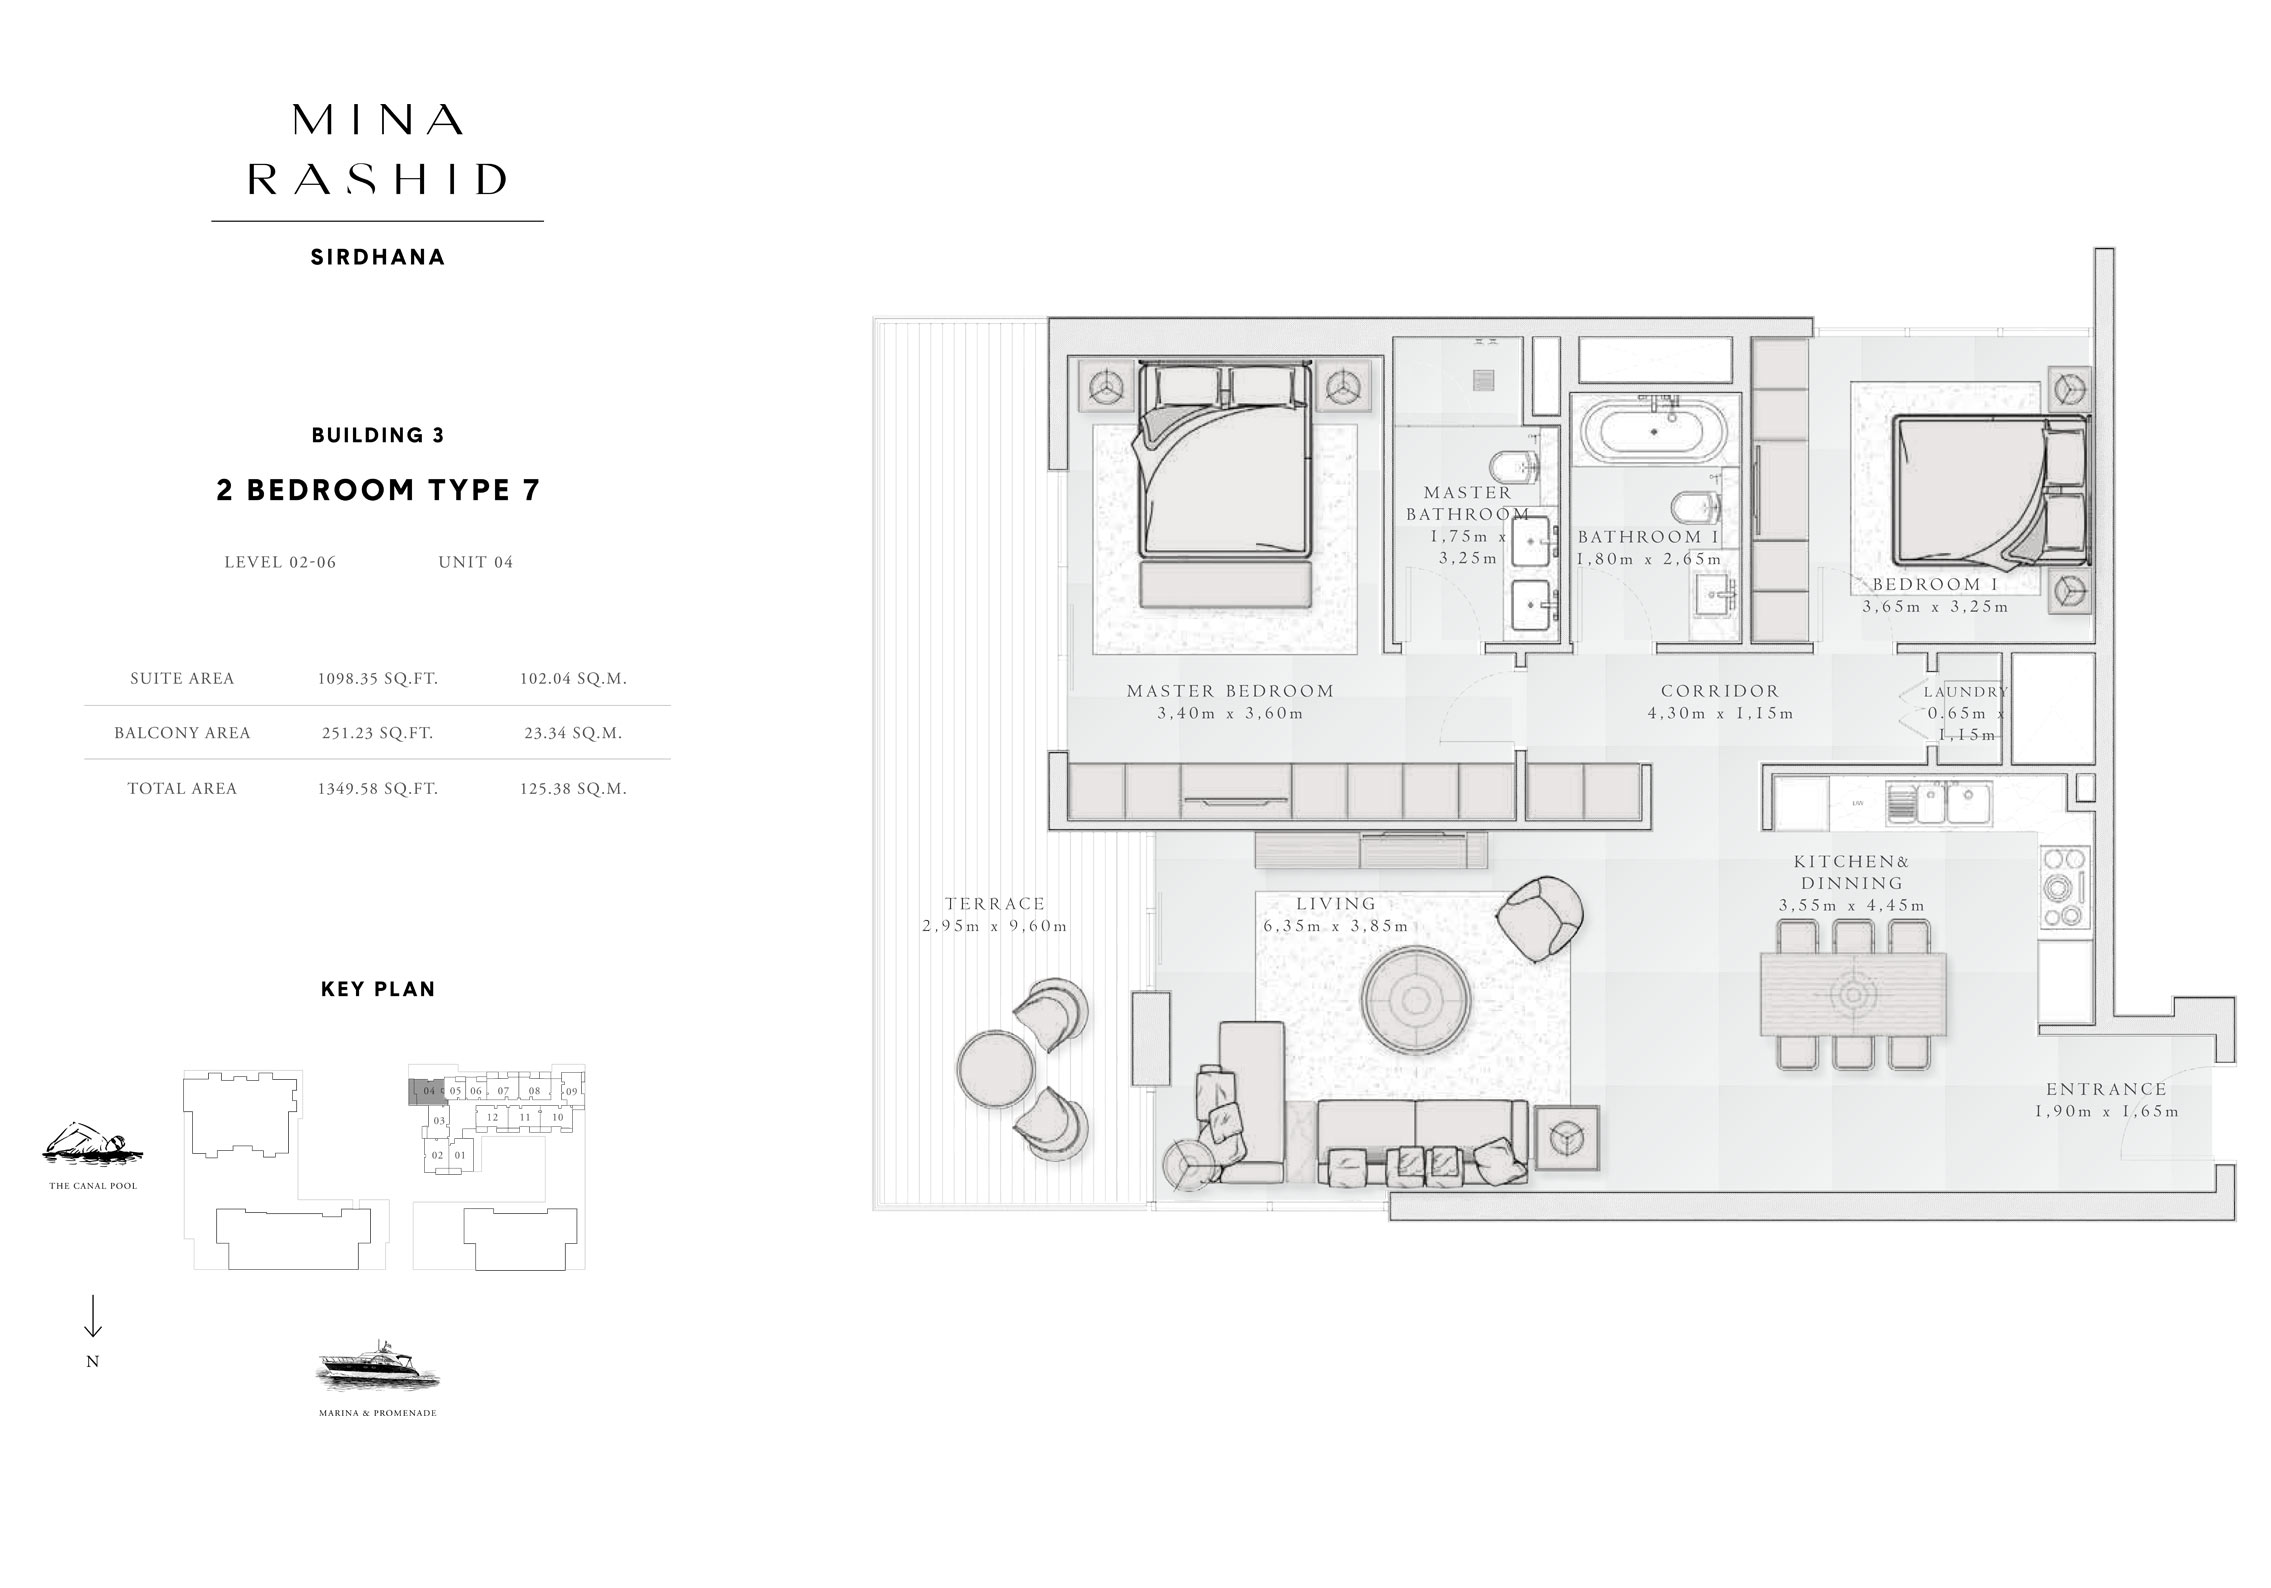 2-Bedroom-Type-7, Building-3, Level-2 to 6, Size-1349-Sq-Ft